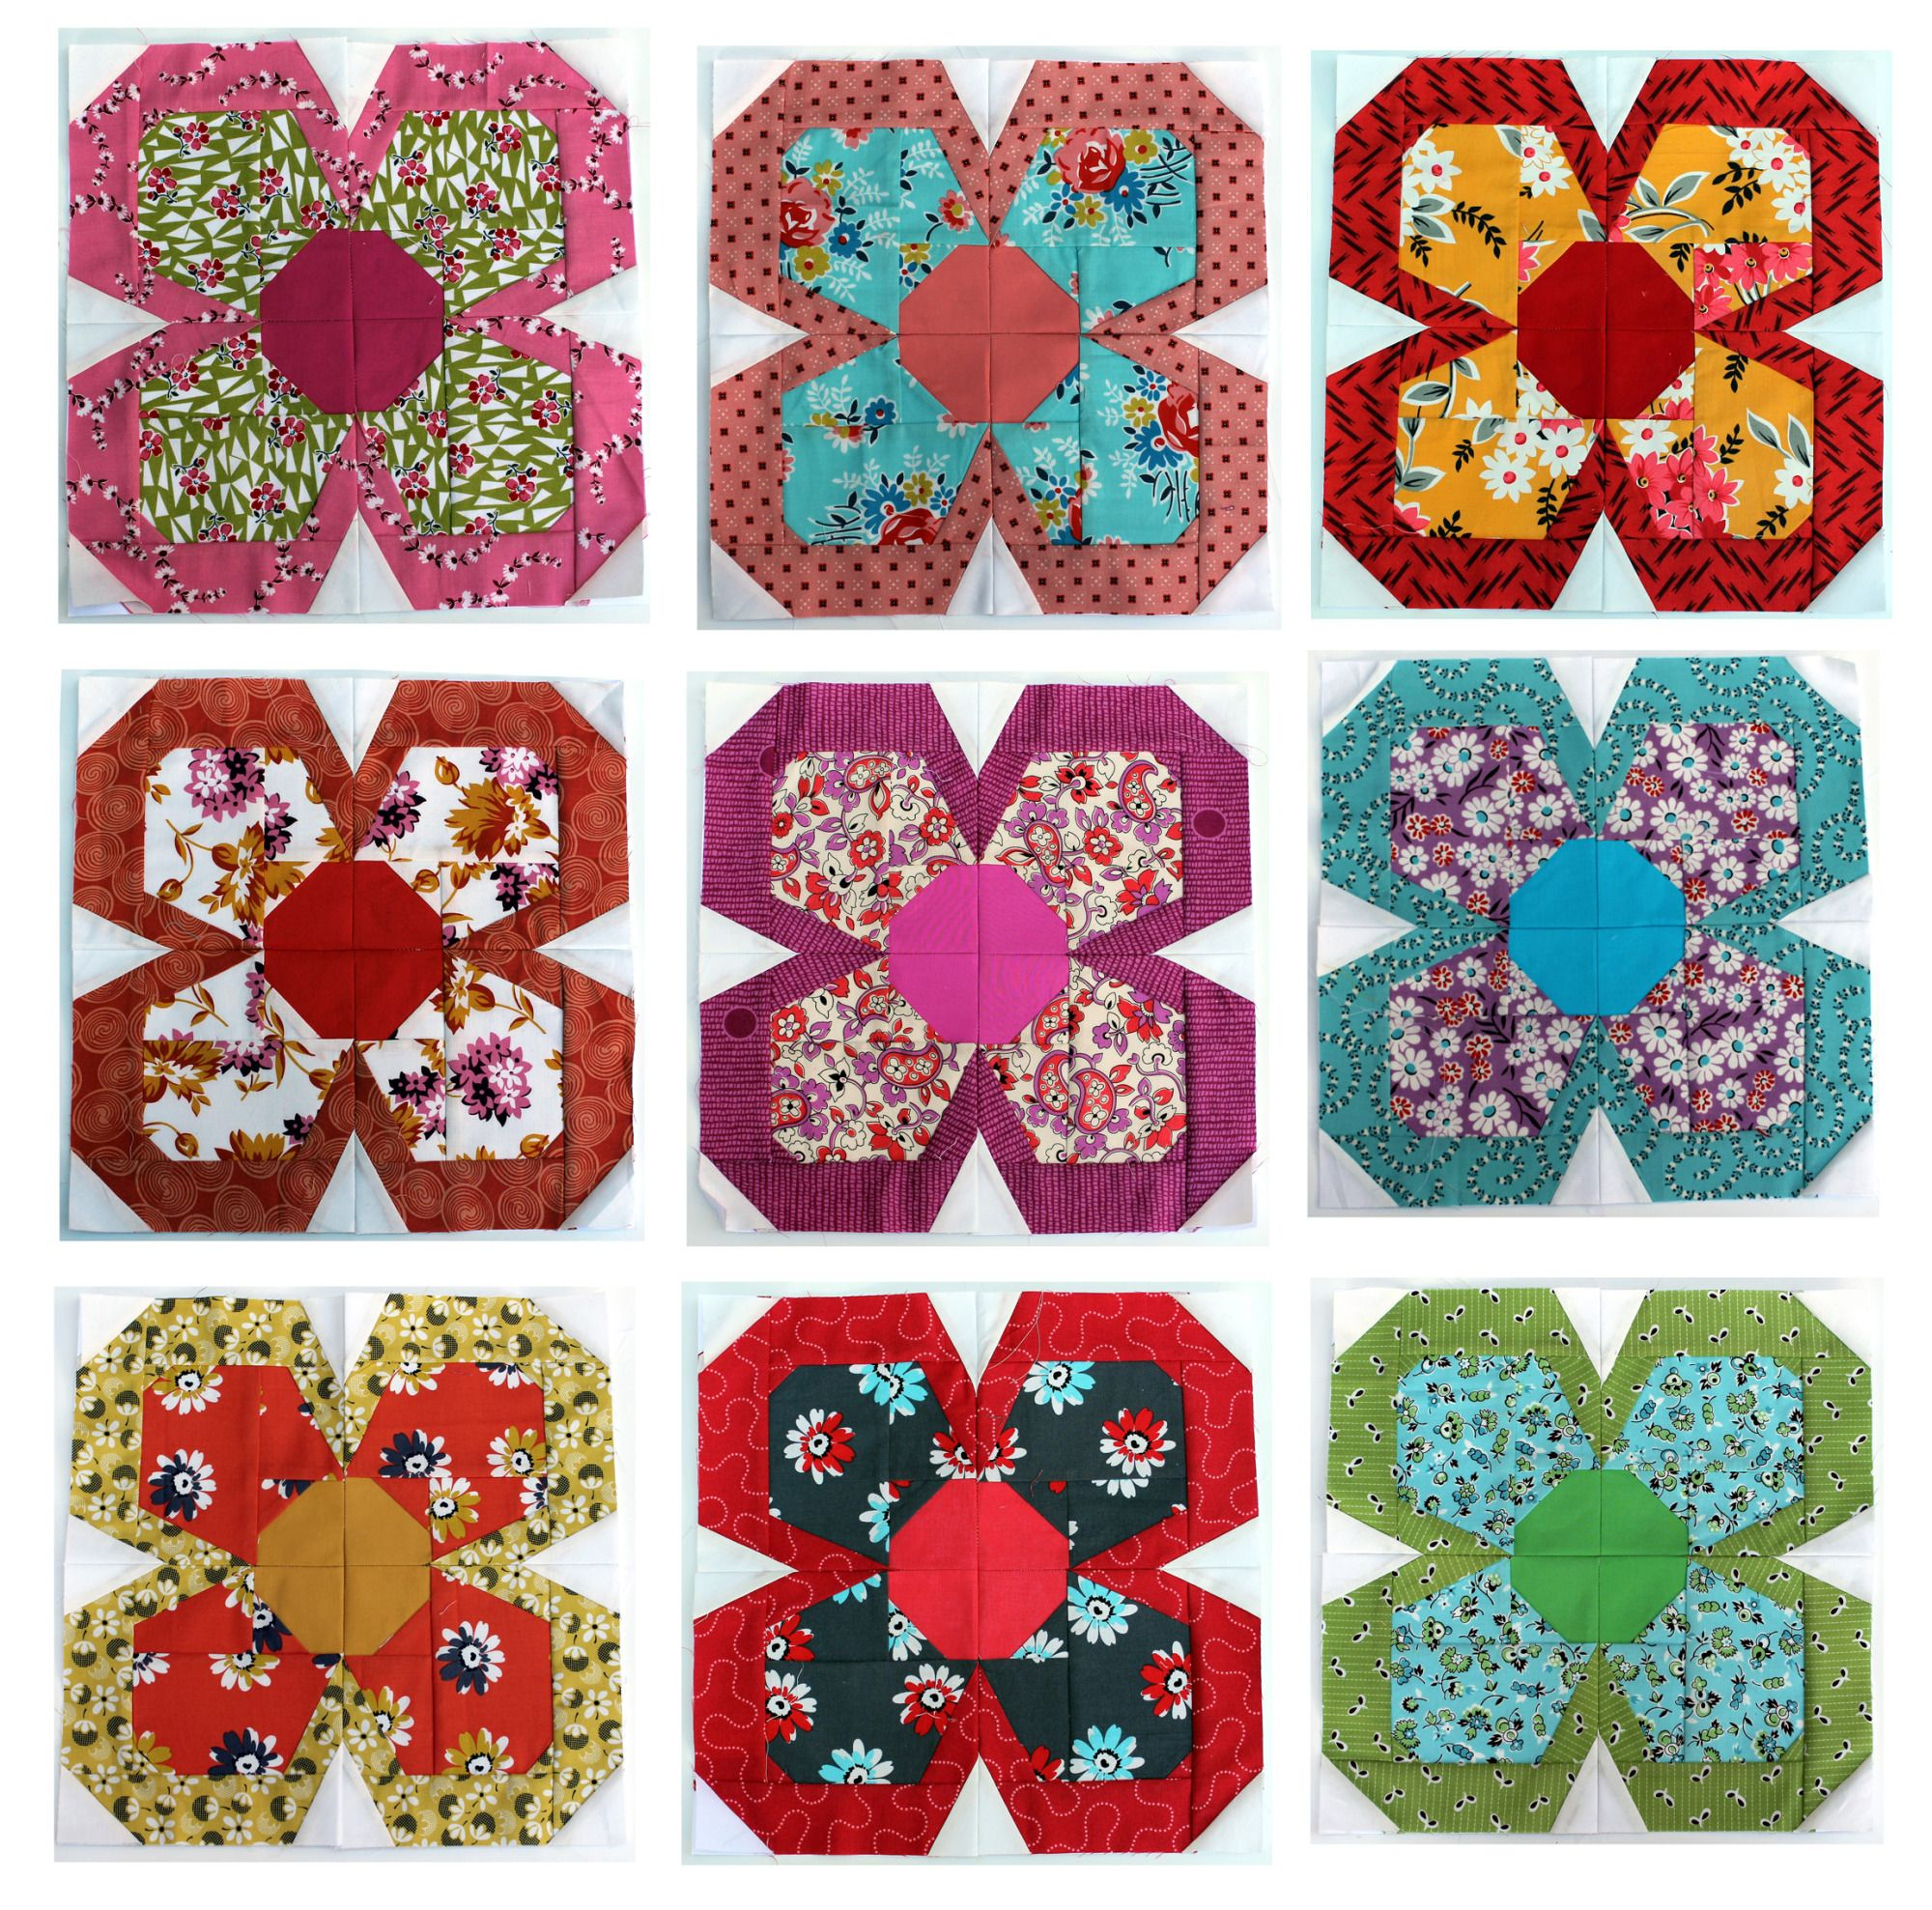 Denyse Schmidt Paper Pieced Flowers Quilts And Fabrics Pinterest